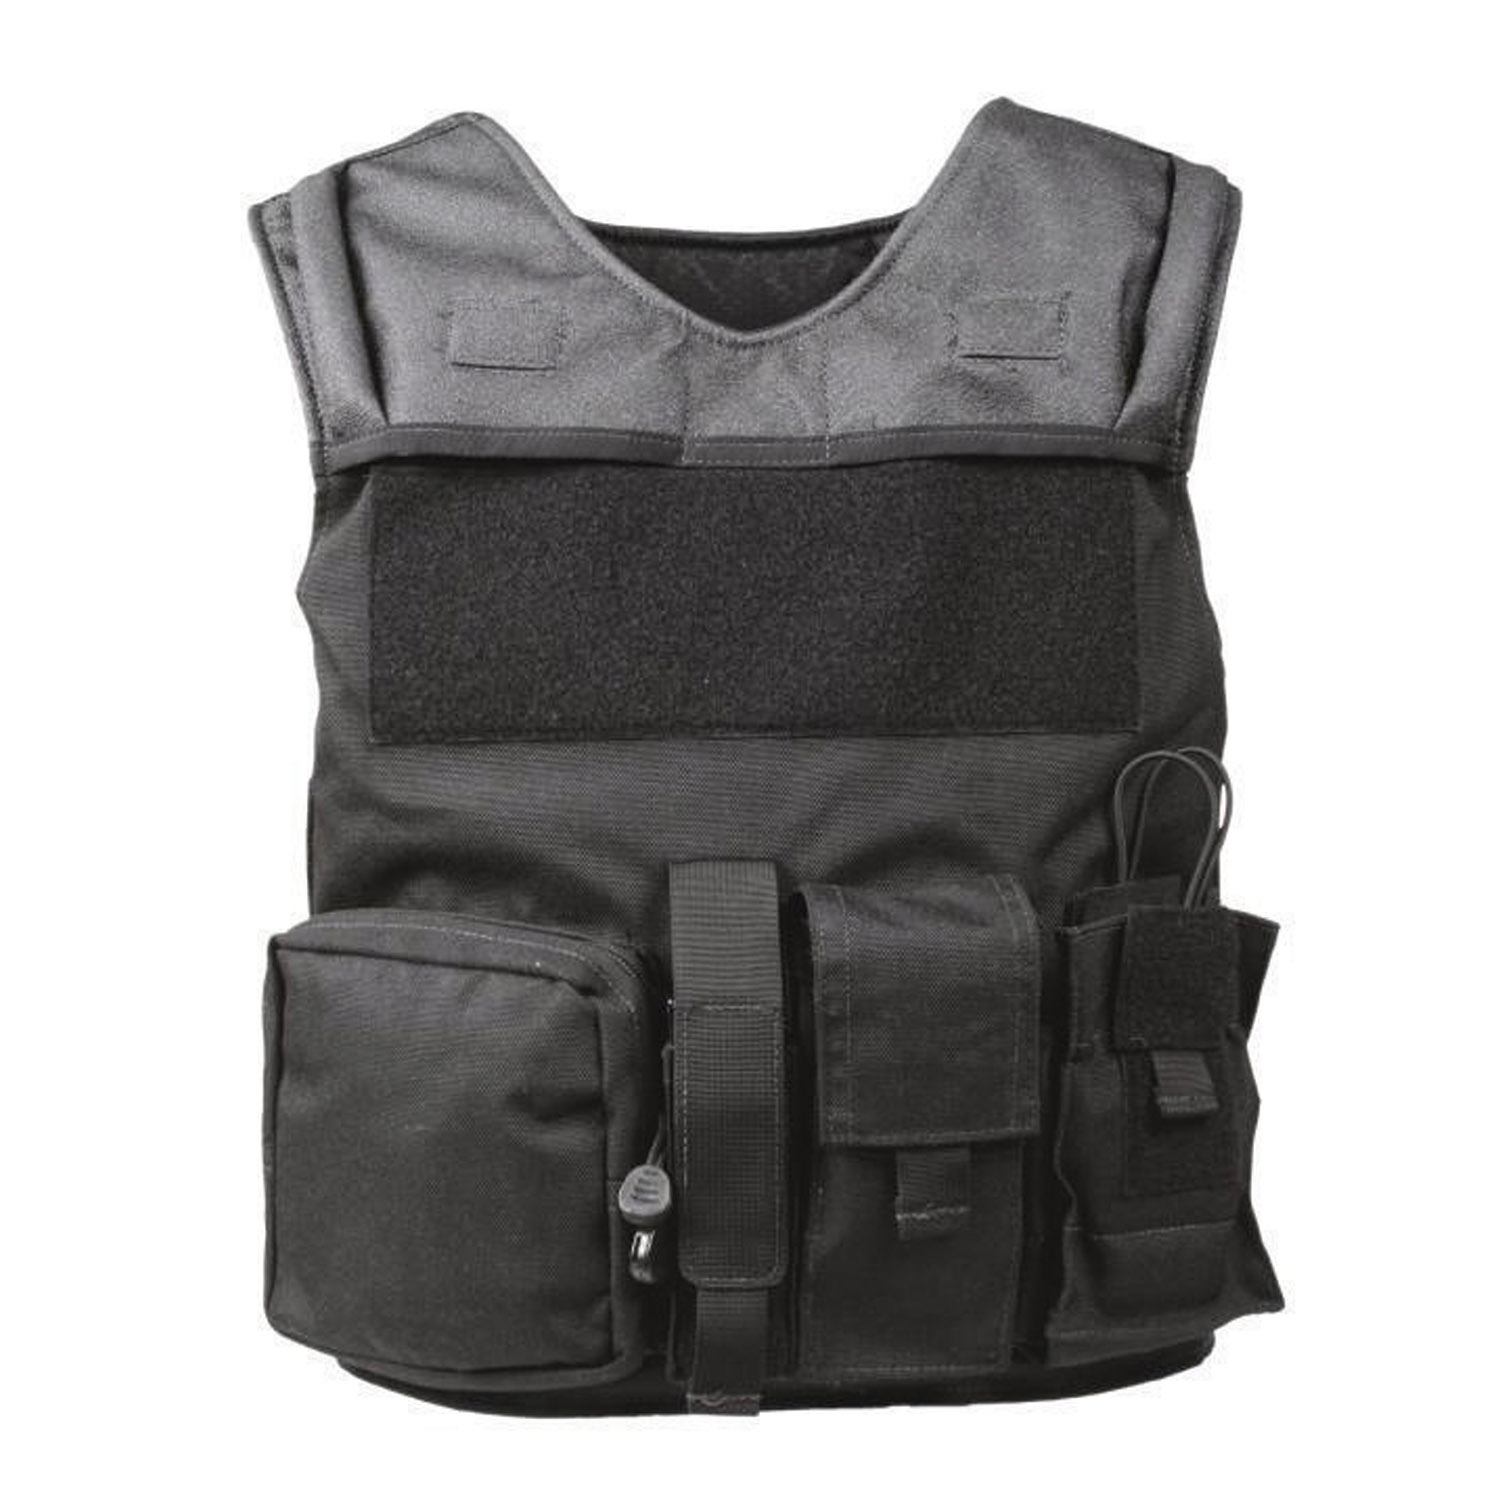 American Body Armor Tactical Outer Carrier with Pocket